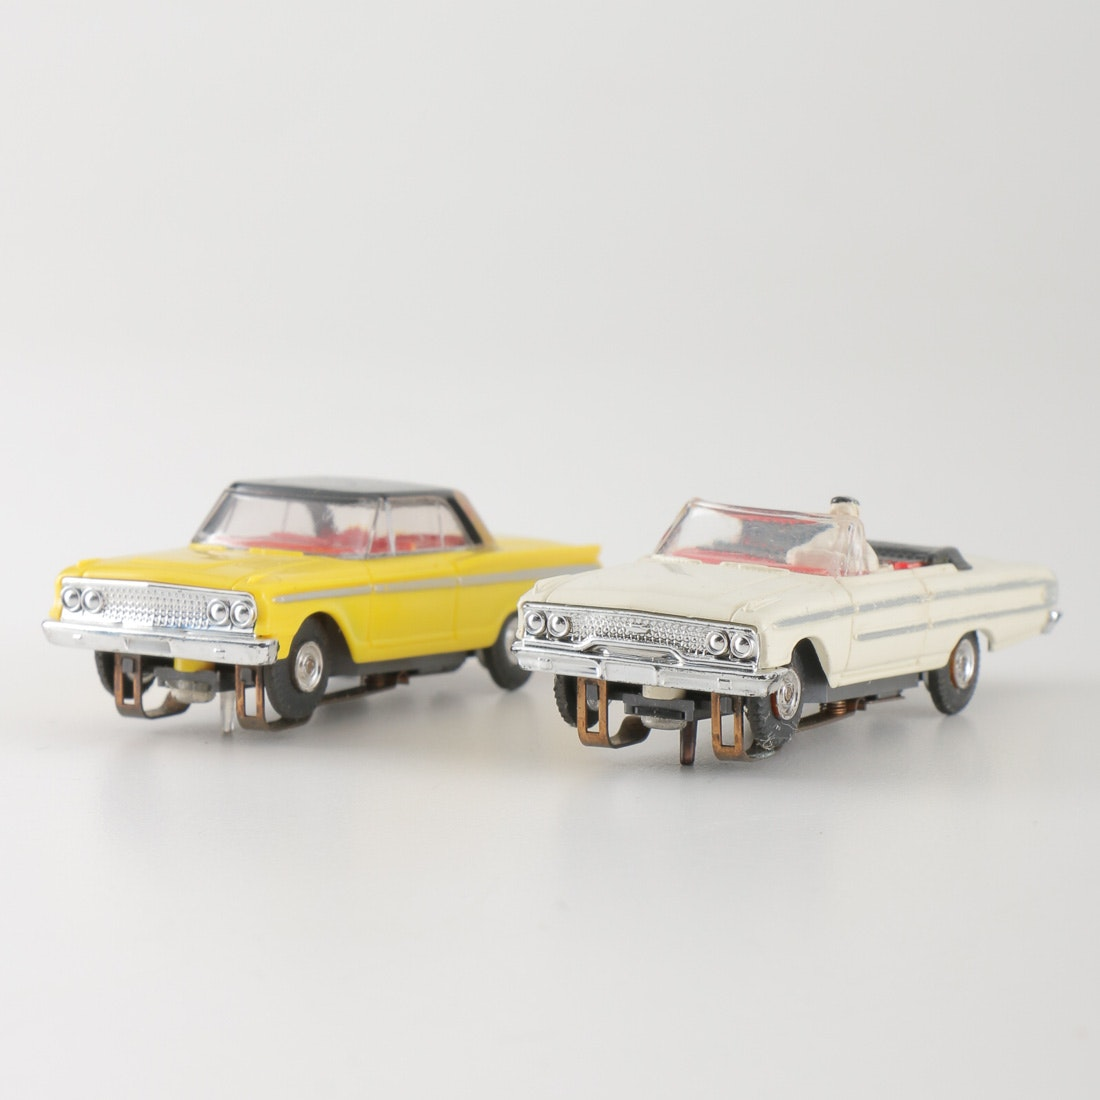 Pair of Aurora TJet Ford Fairlane and Galaxie Slot Cars